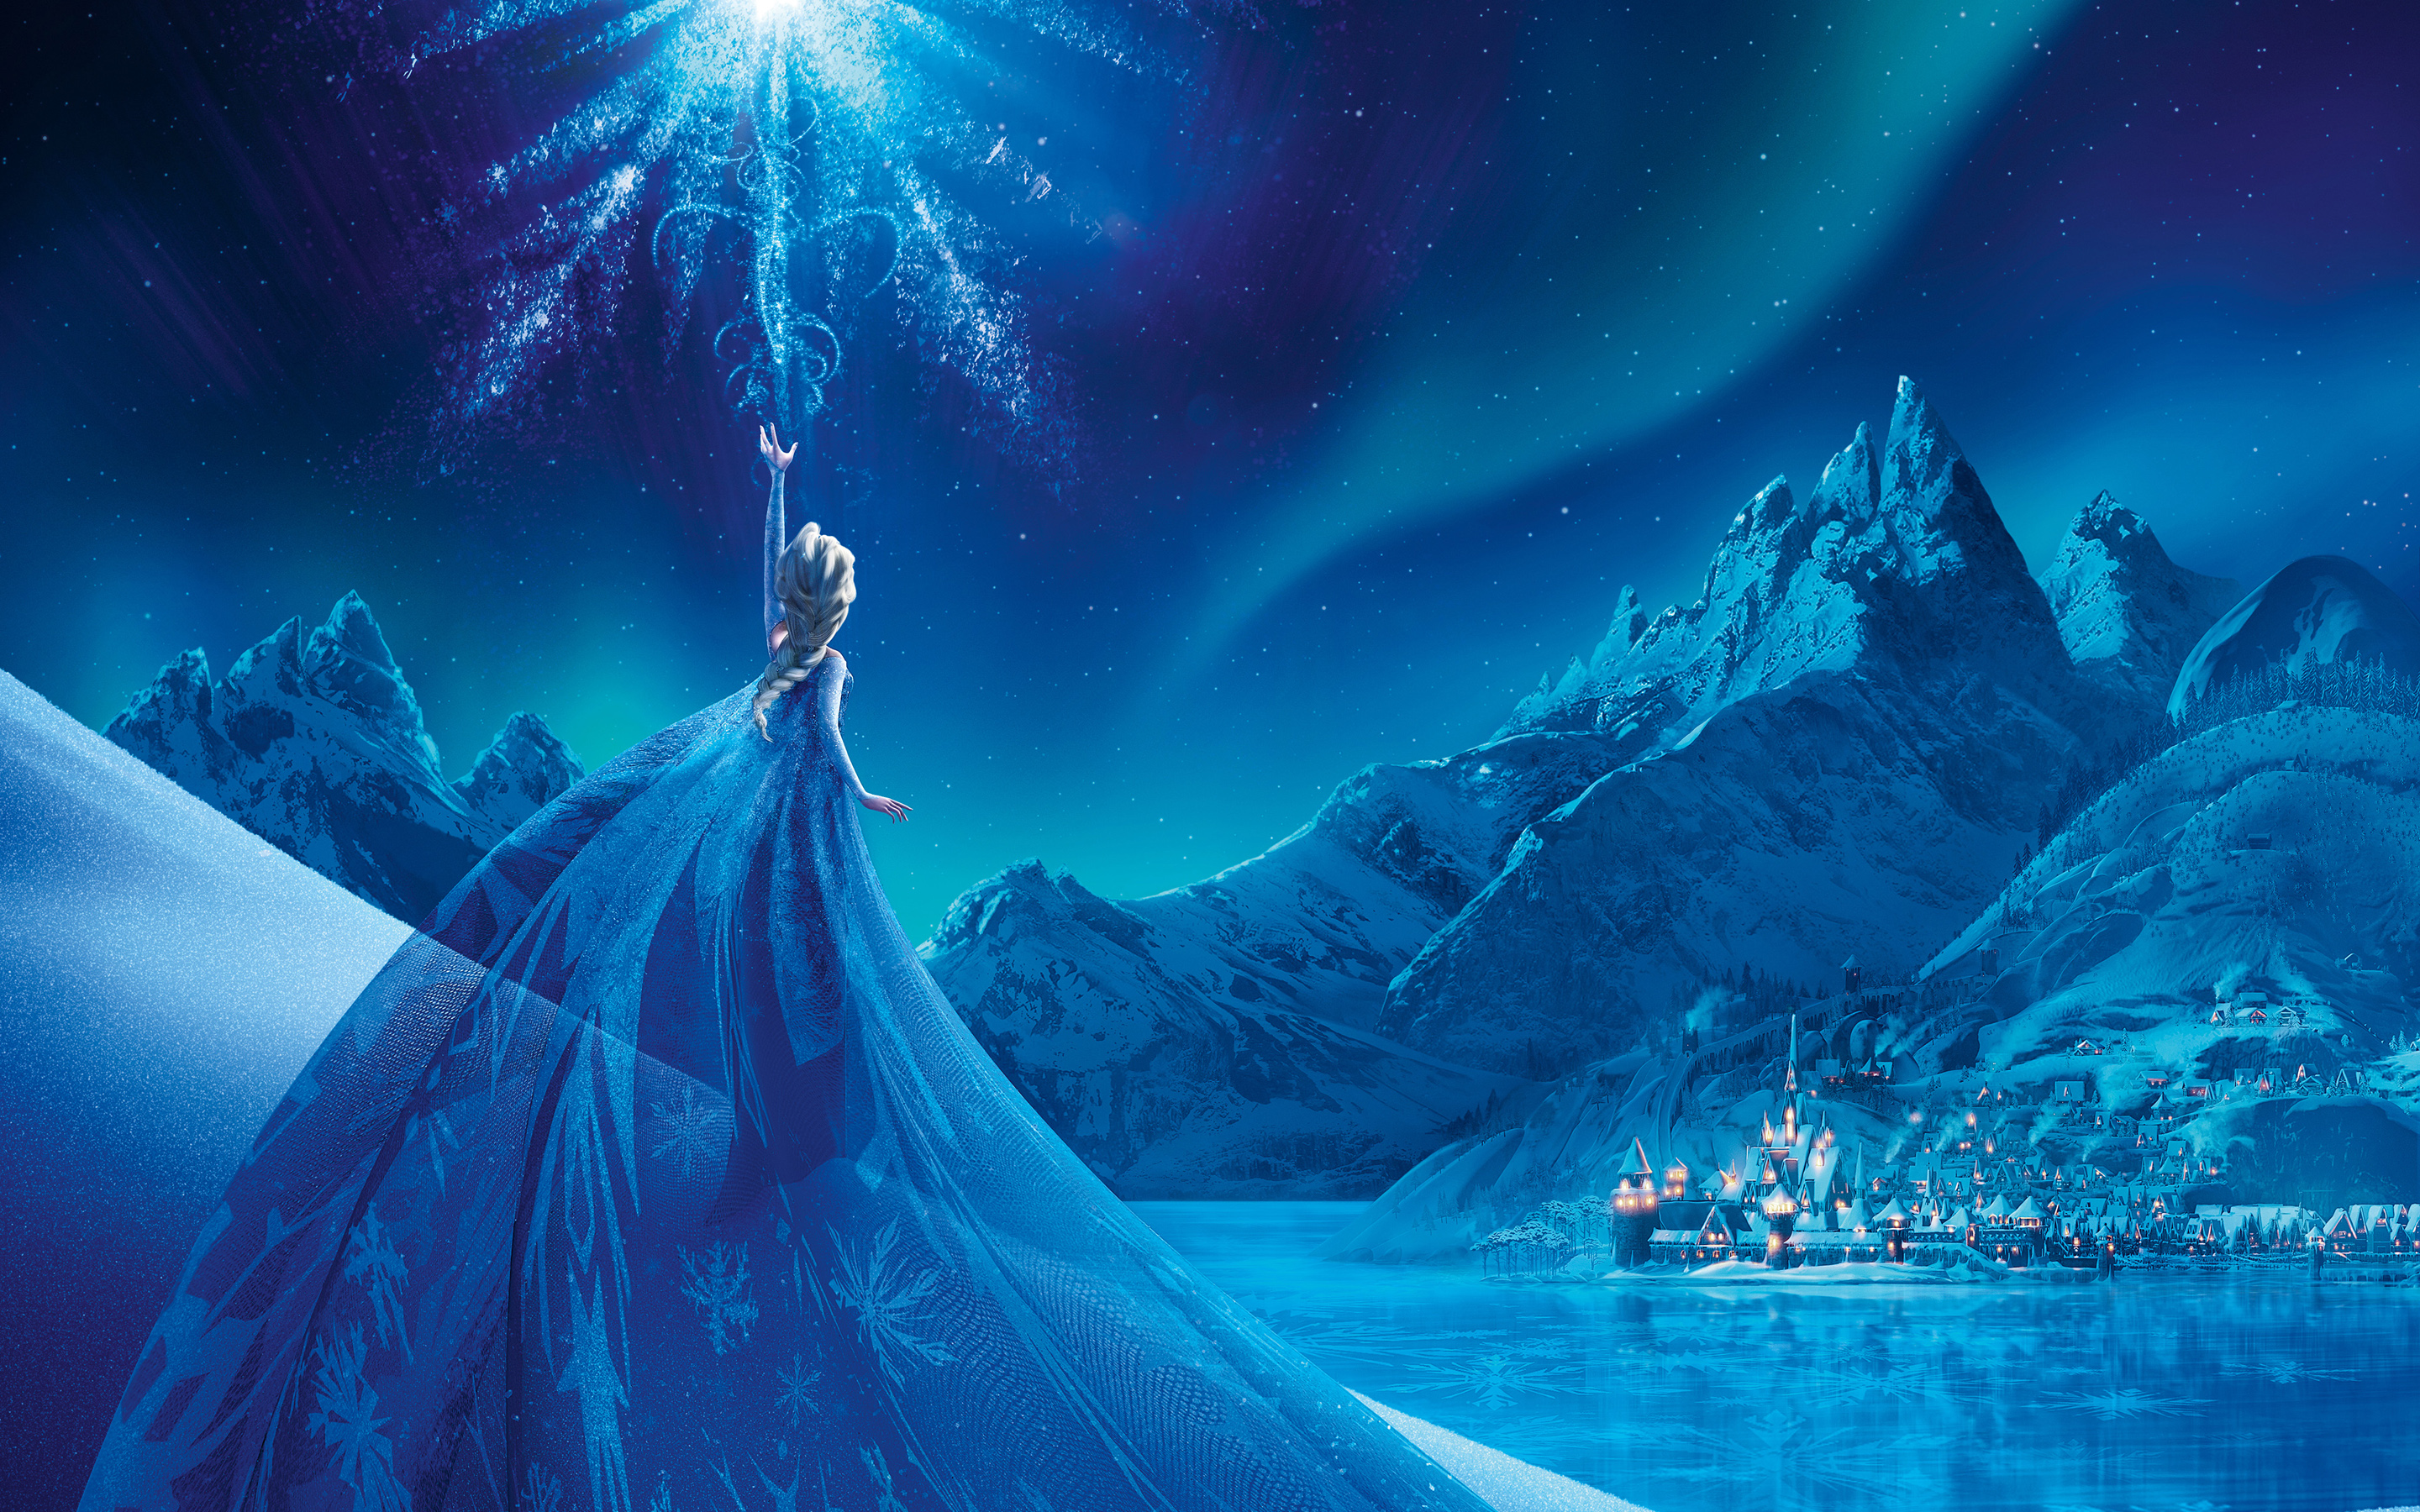 free frozen wallpaper for laptops - wallpapersafari